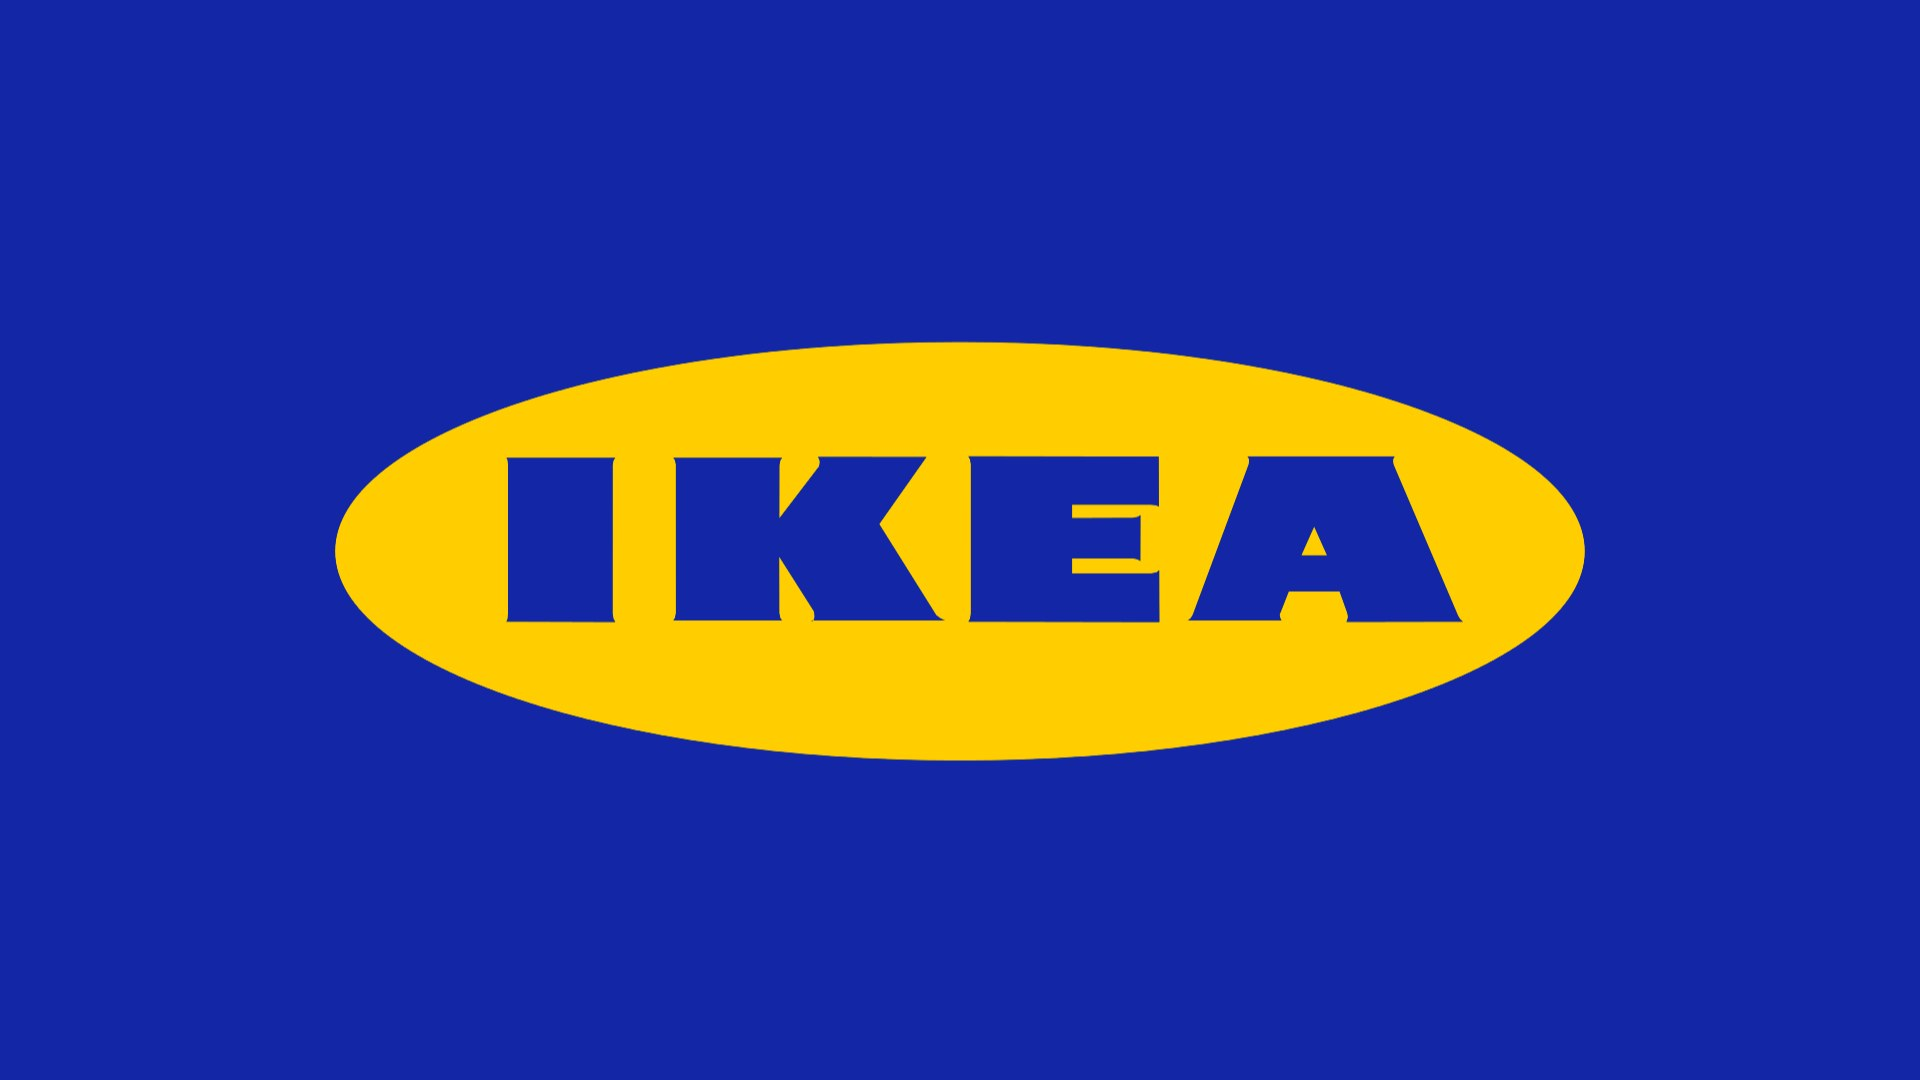 The IKEA logo isolated on a blue background